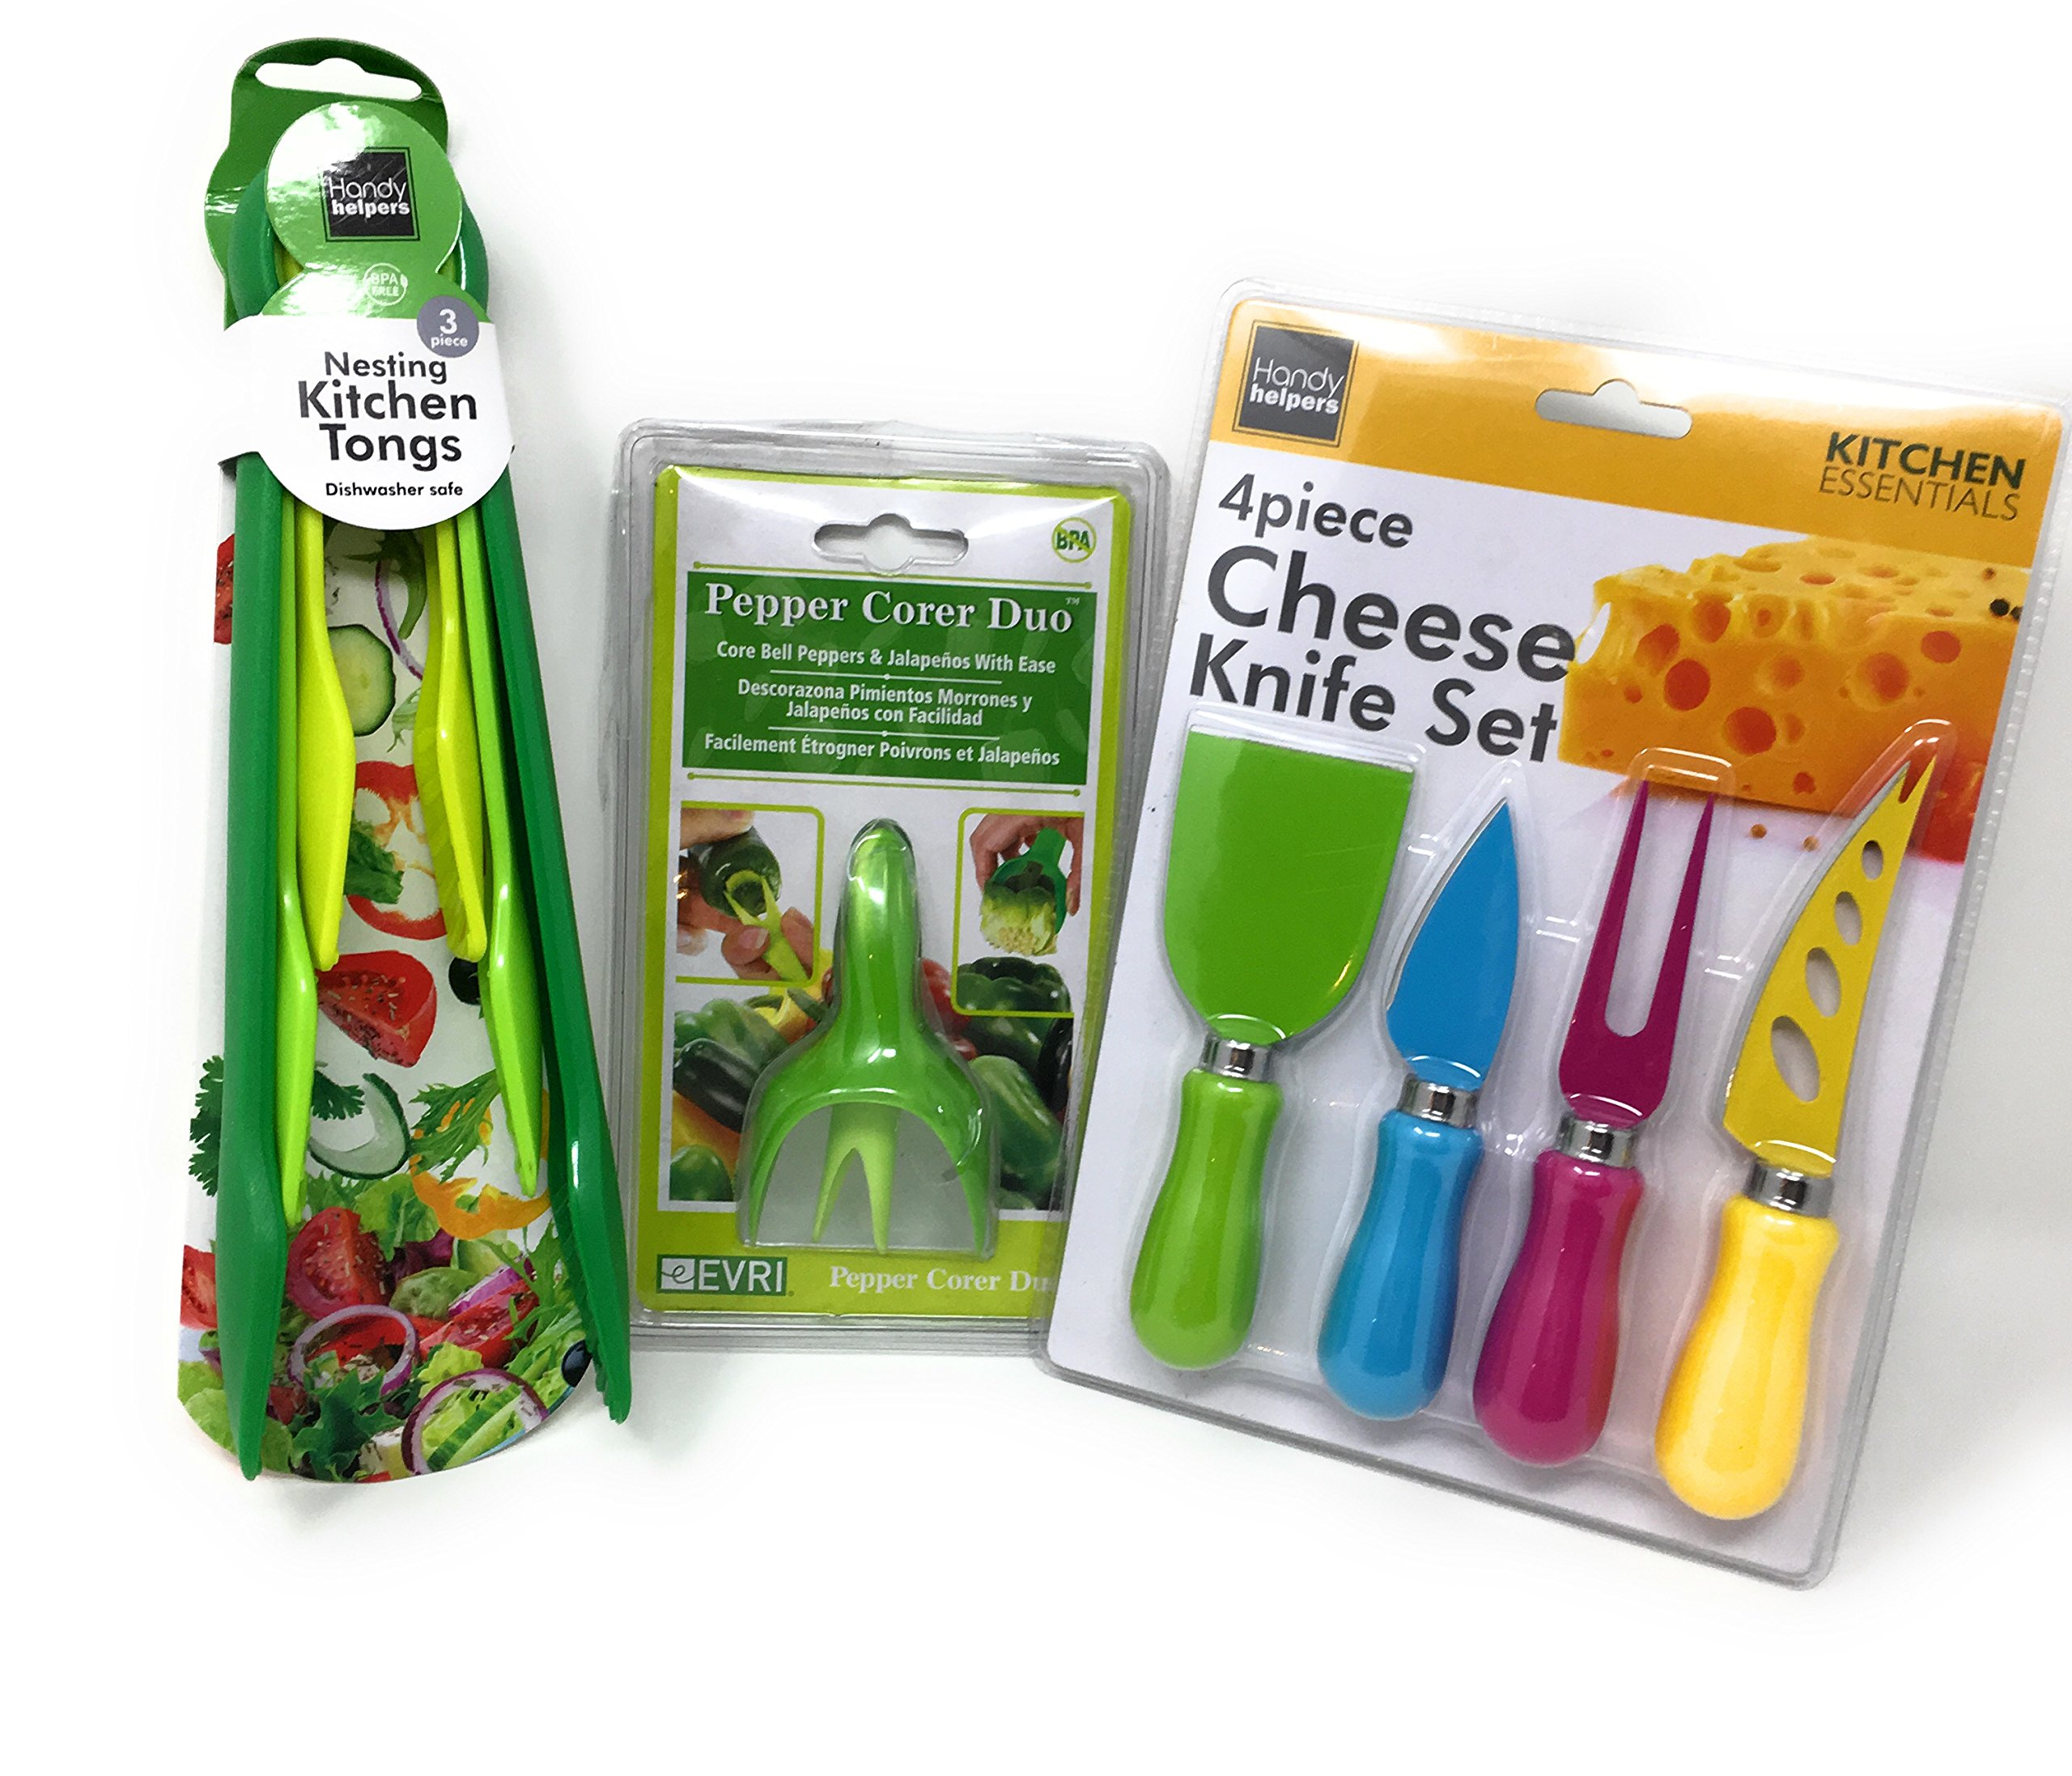 Kitchen Essentials Bundle: Practical, Fun, Adorable Cheese Knife Set (4pcs), Nestling Kitchen Tongs (3 Sizes), & Bell Pepper & Jalapeno Corer Duo by Handy Helpers